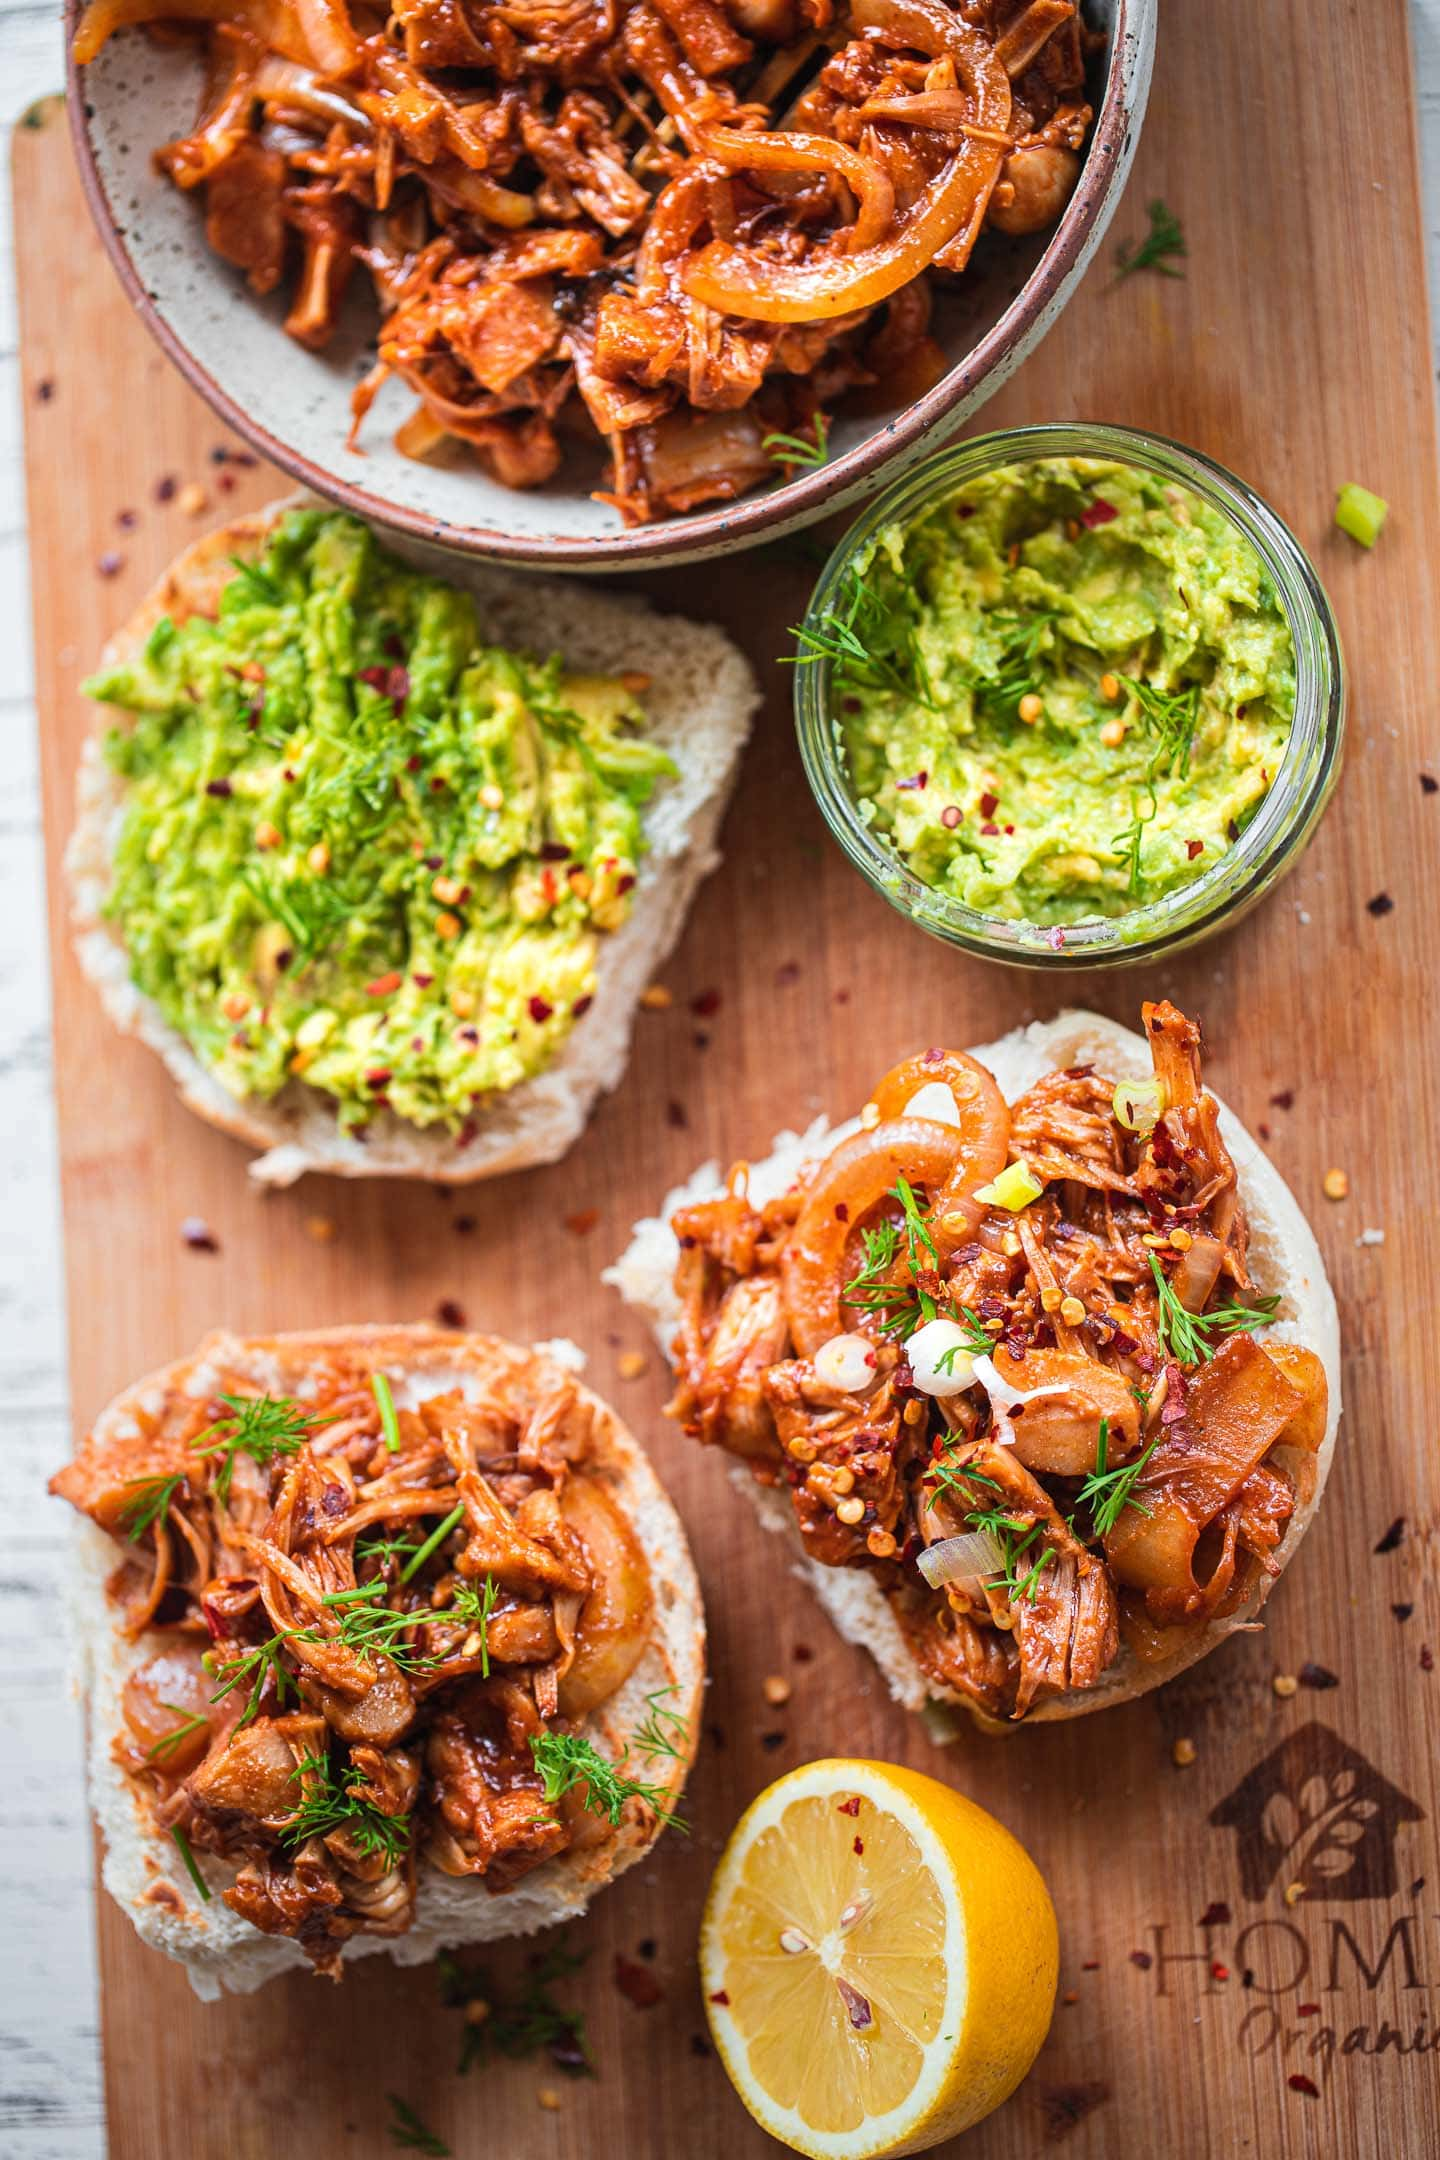 Vegan pulled 'pork' sandwiches with avocado